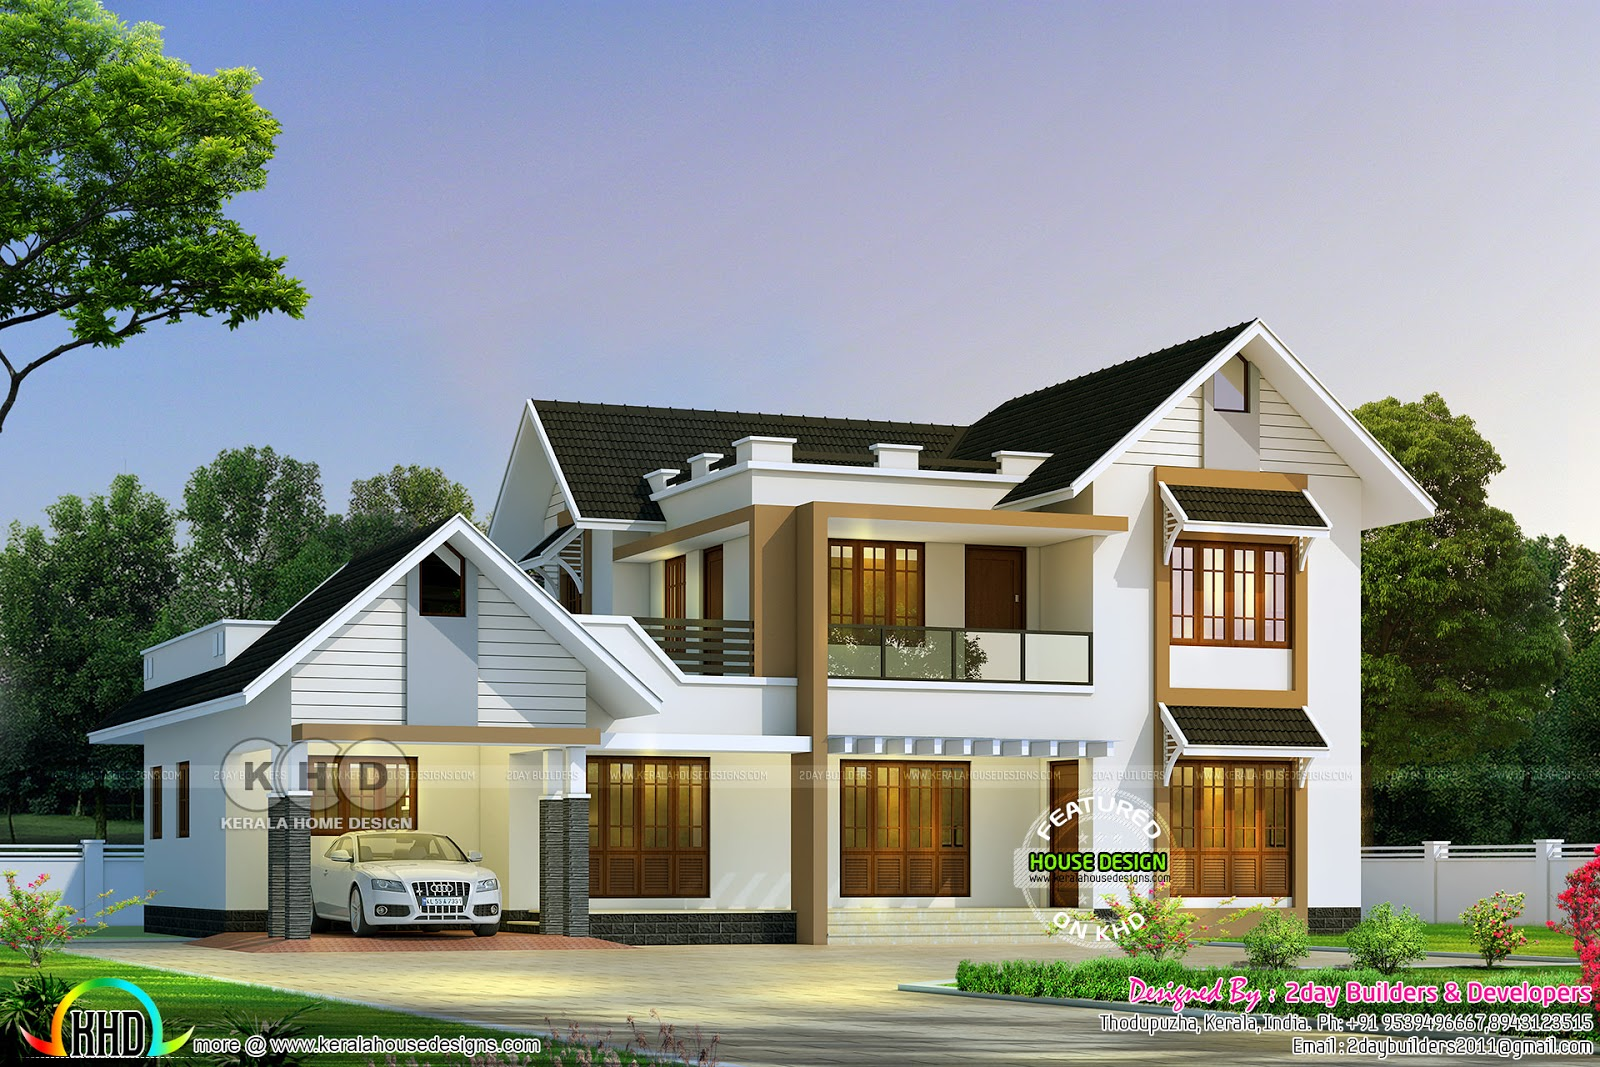 Incroyable Please Follow Kerala Home Design